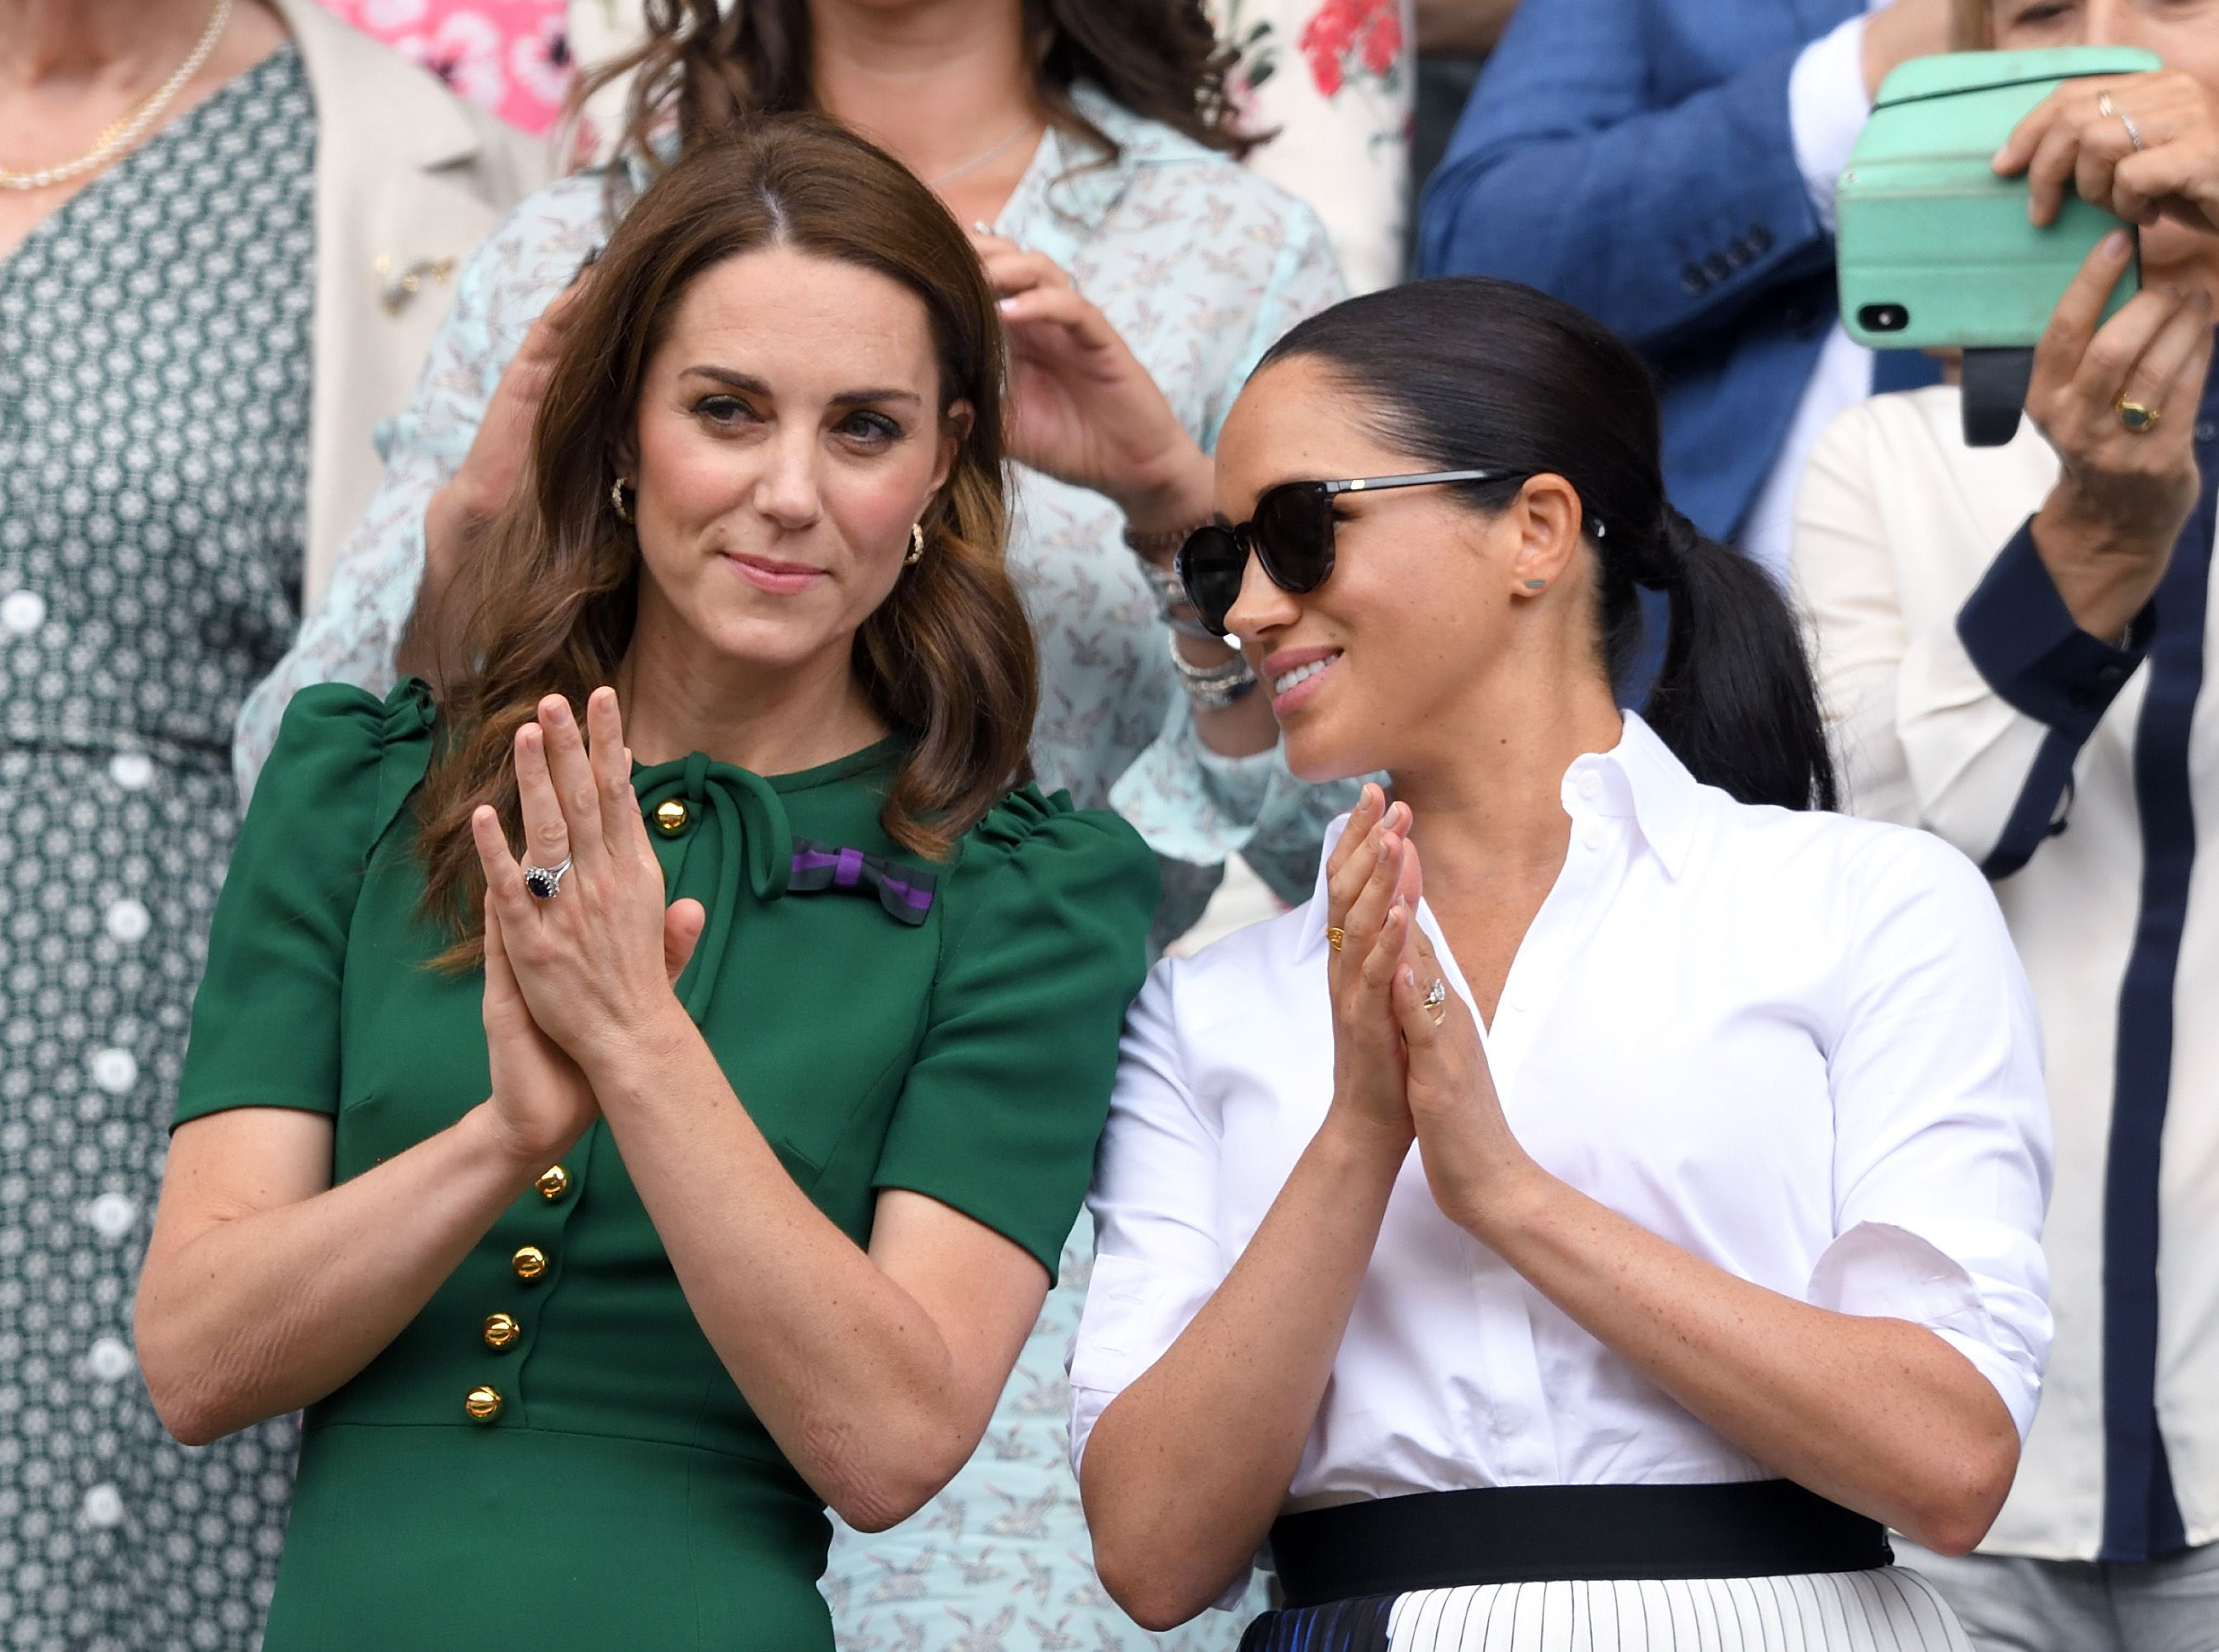 Kate Middleton and Meghan Markle in the Royal Box at day twelve of the Wimbledon Tennis Championships at All England Lawn Tennis and Croquet Club on July 13, 2019 | Photo: Getty Images